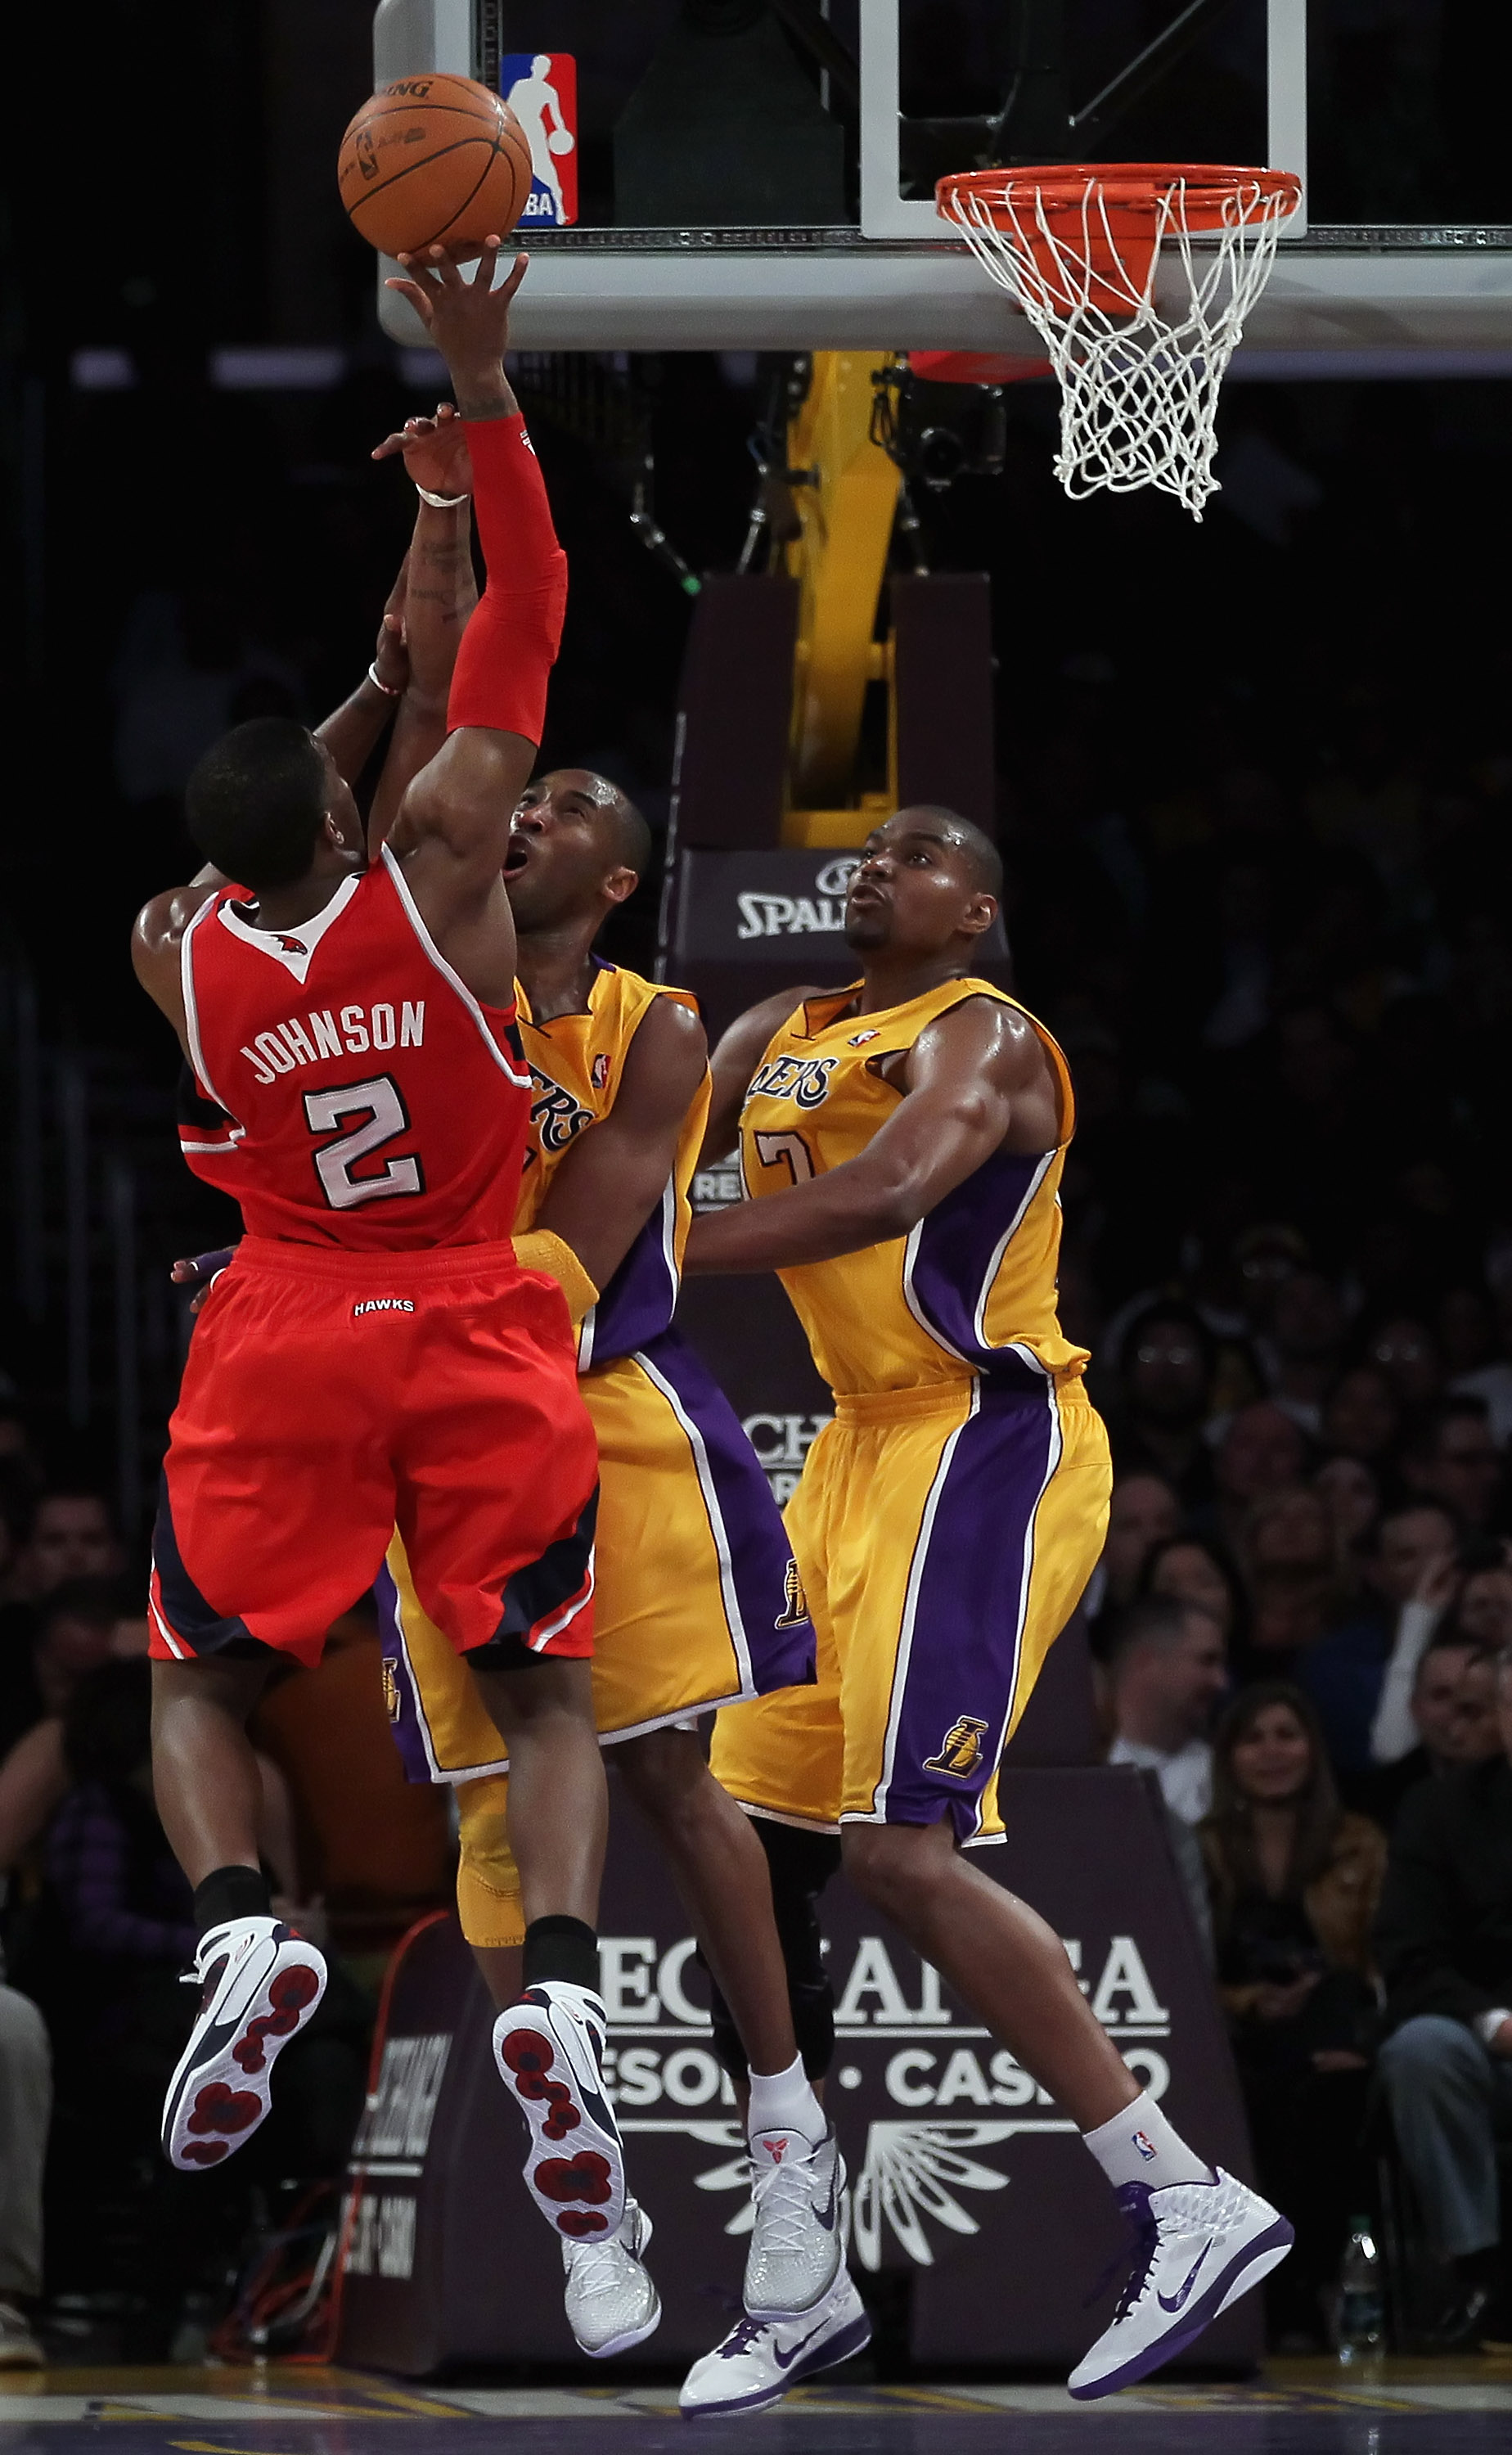 LOS ANGELES, CA - FEBRUARY 22:  (L-R) Joe Johnson #2 of the Atlanta Hawks shoots while being defended by Kobe Bryant #24 and Andrew Bynum #17 of the Los Angeles Lakers in the first half at Staples Center on February 22, 2011 in Los Angeles, California. Th